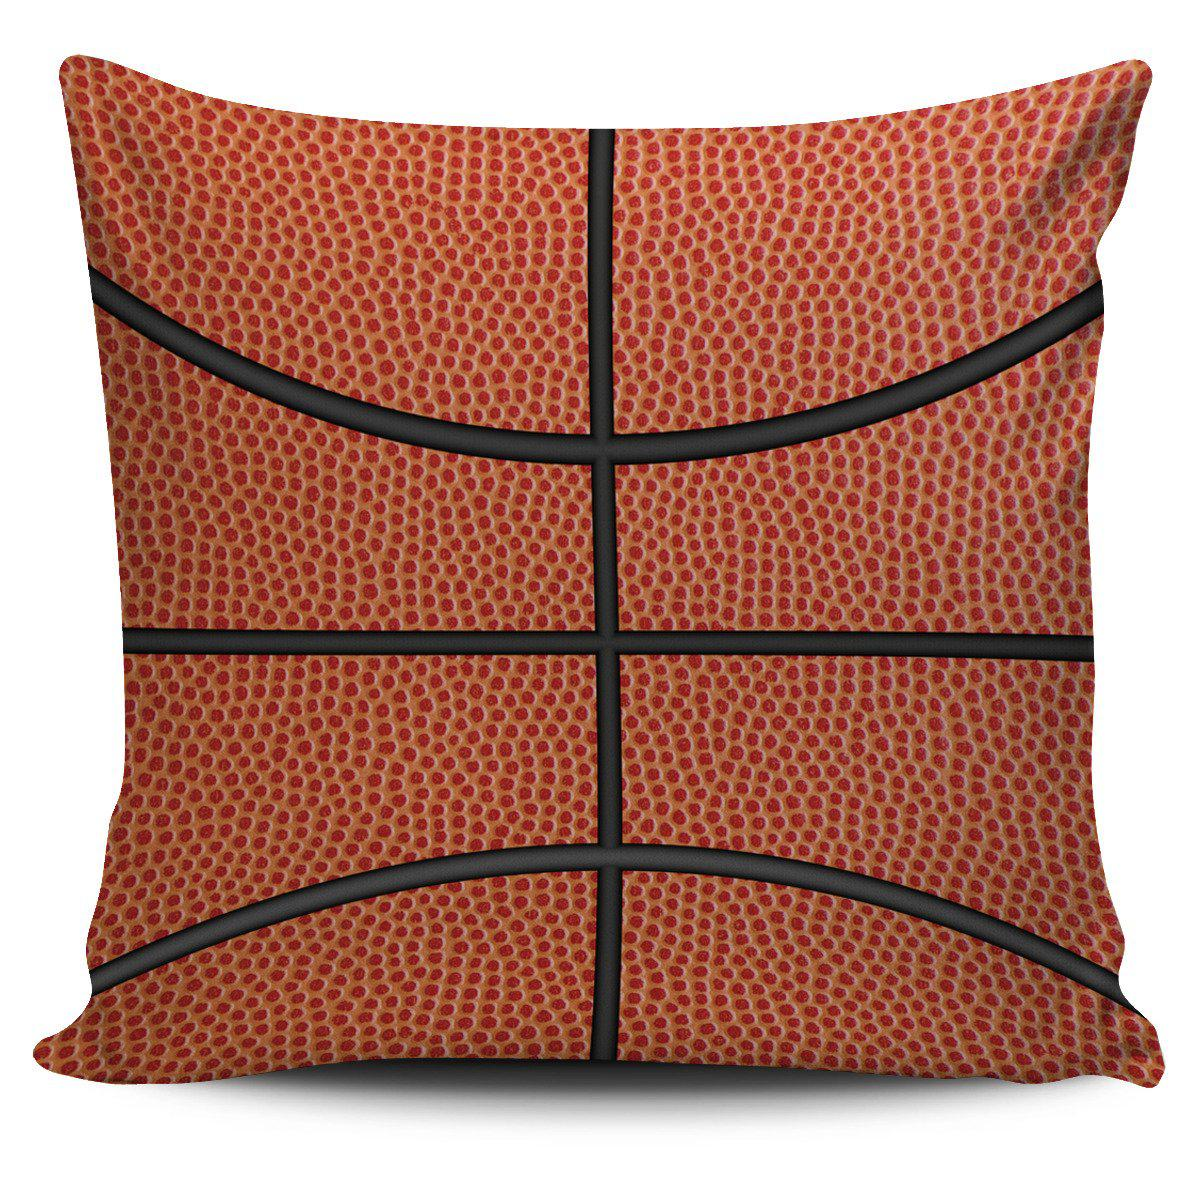 Shopeholic:Basketball 01 Pillow Cover